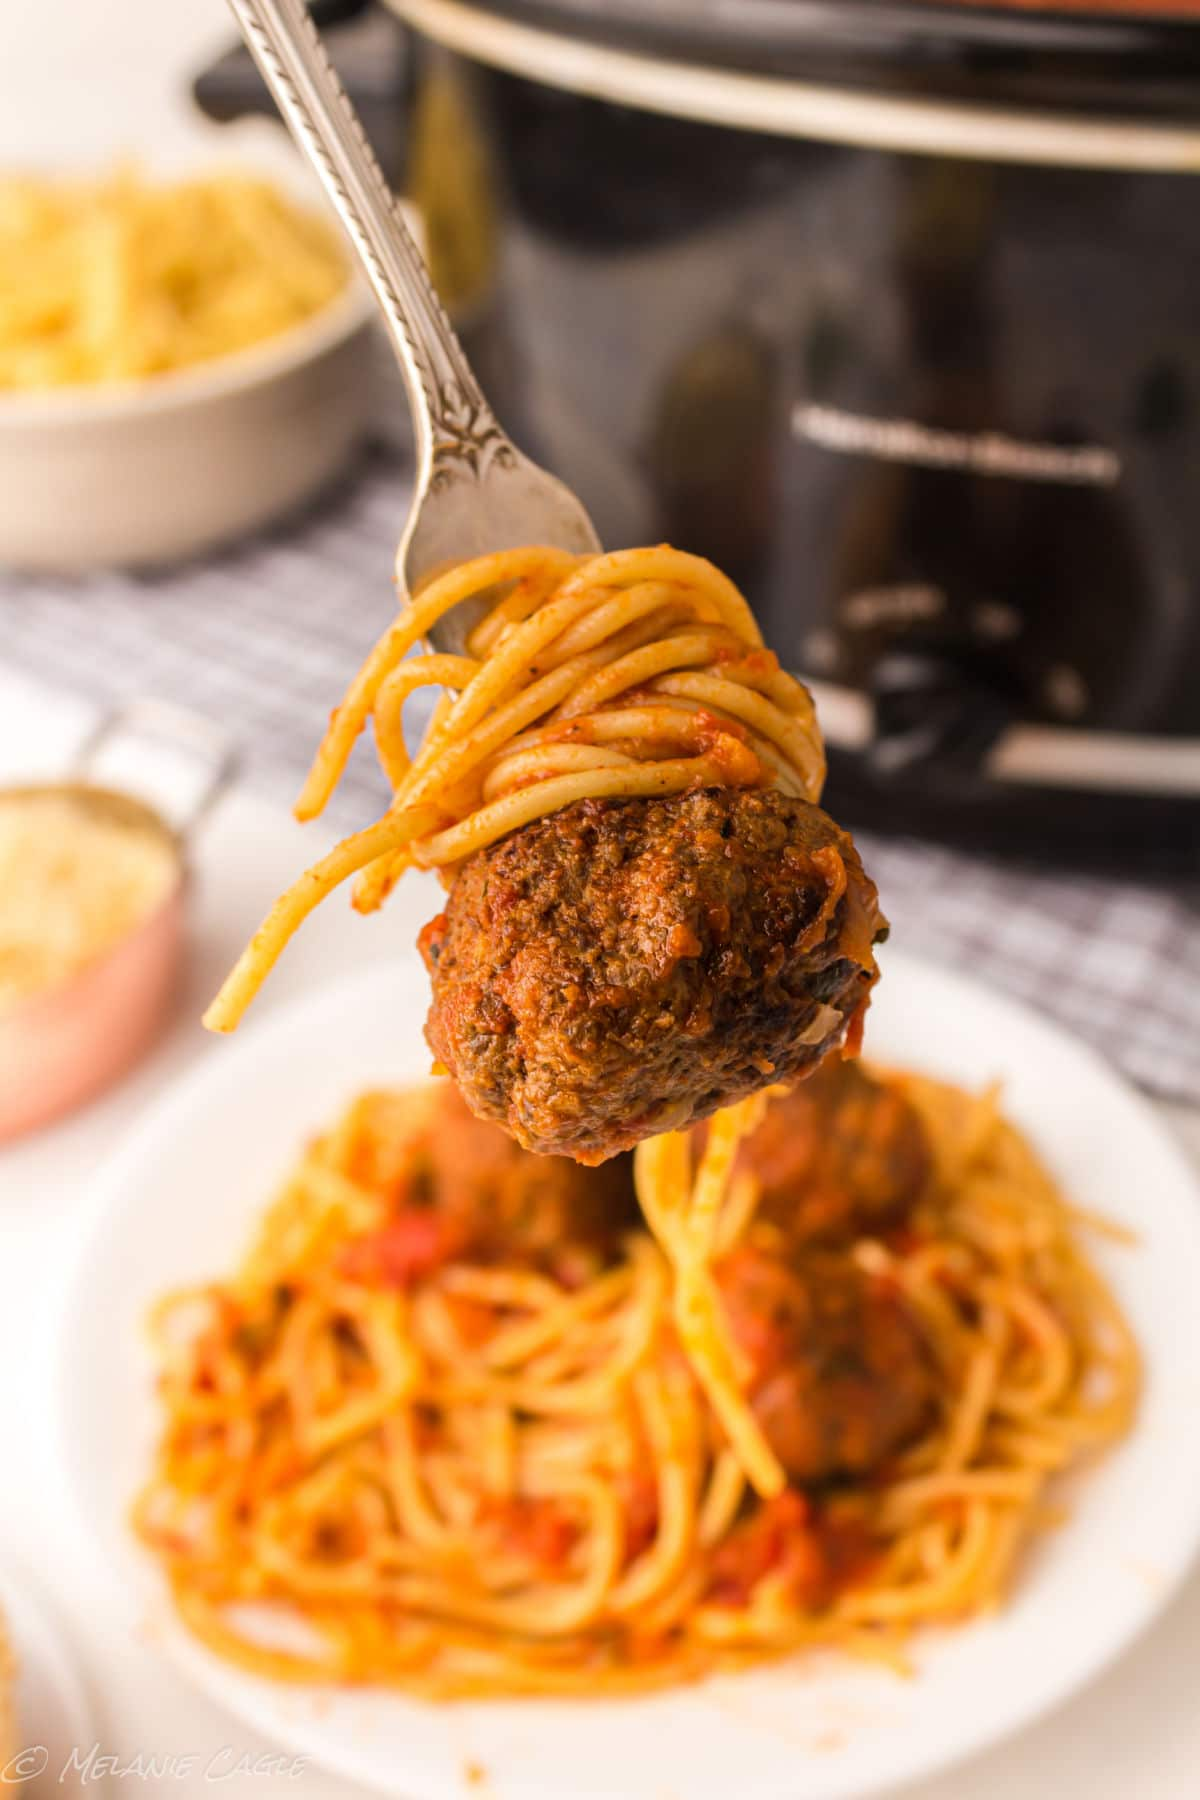 a close up of a meatballs on a fork with spaghetti